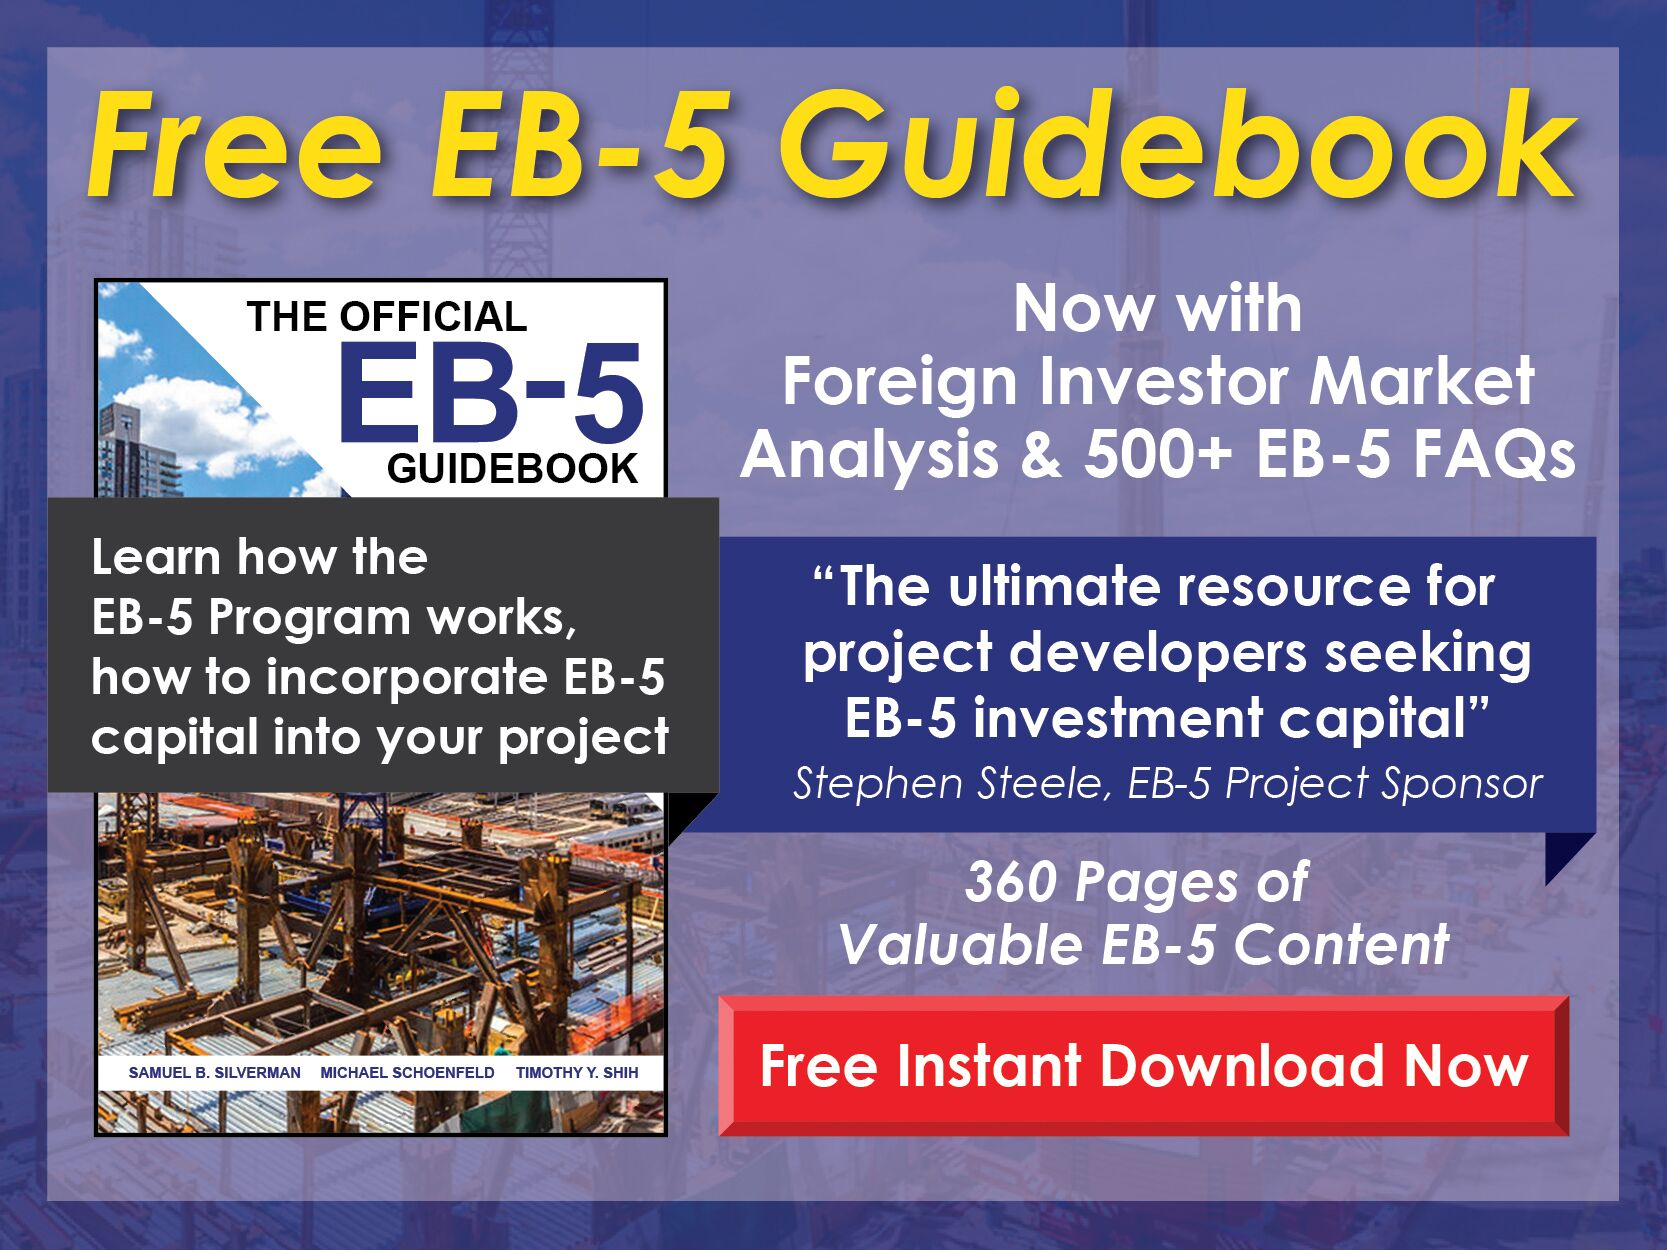 Website-Pop-up-image-EB-5-Guide-01Mar17-v4-Medium